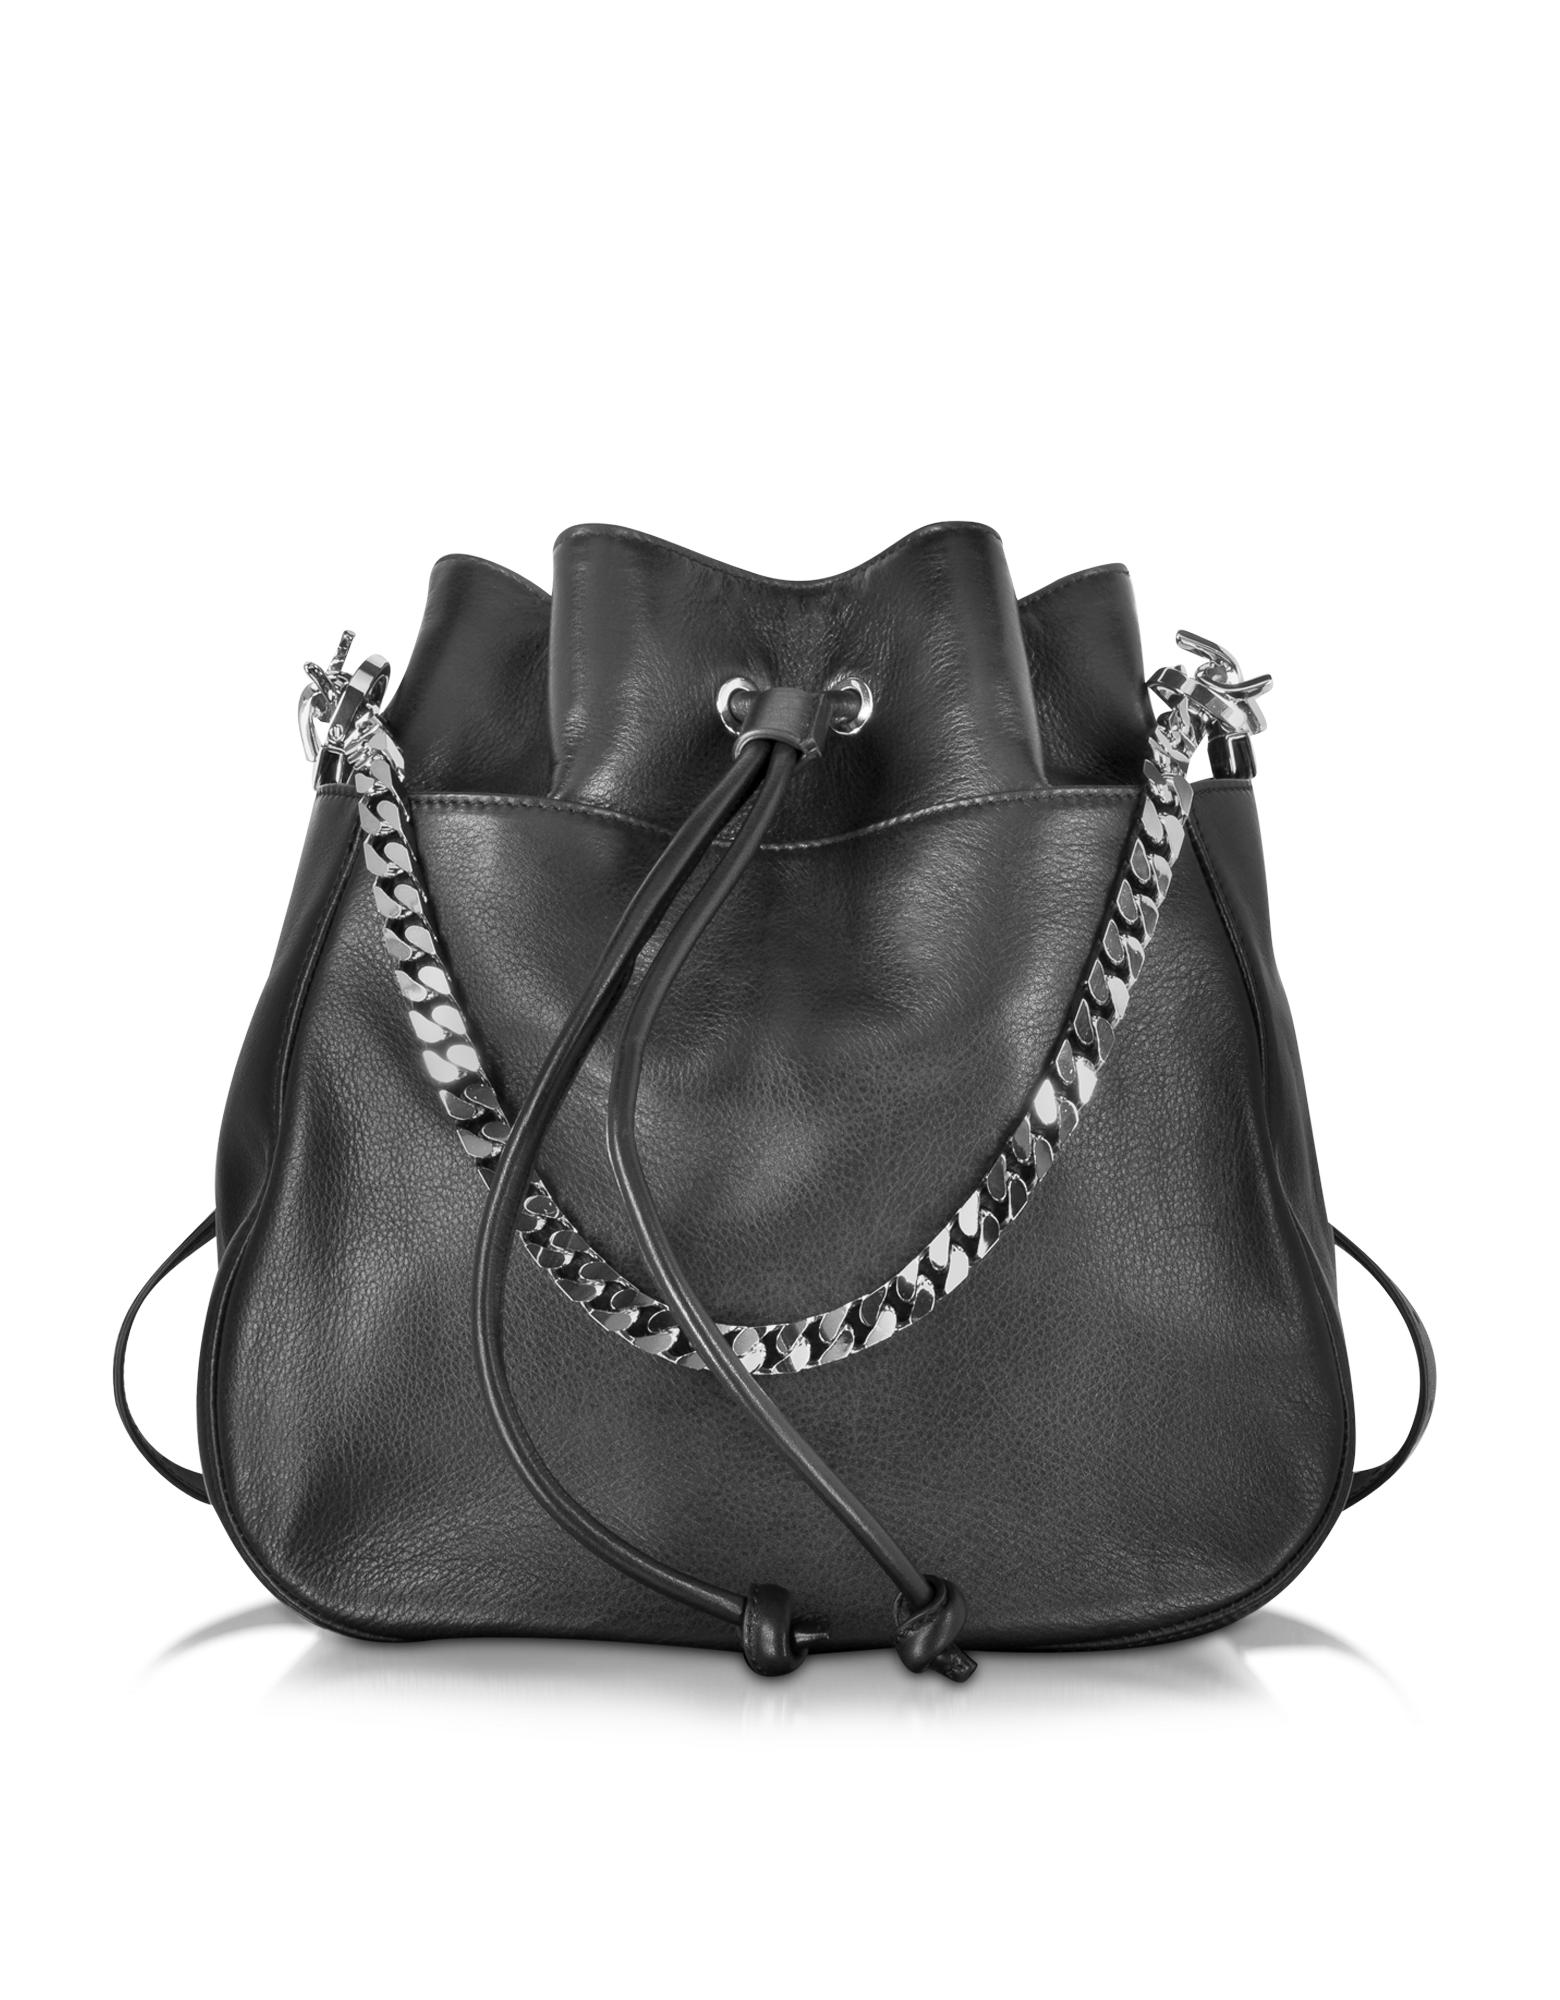 Babe Wire Black Leather Backpack - DSquared2